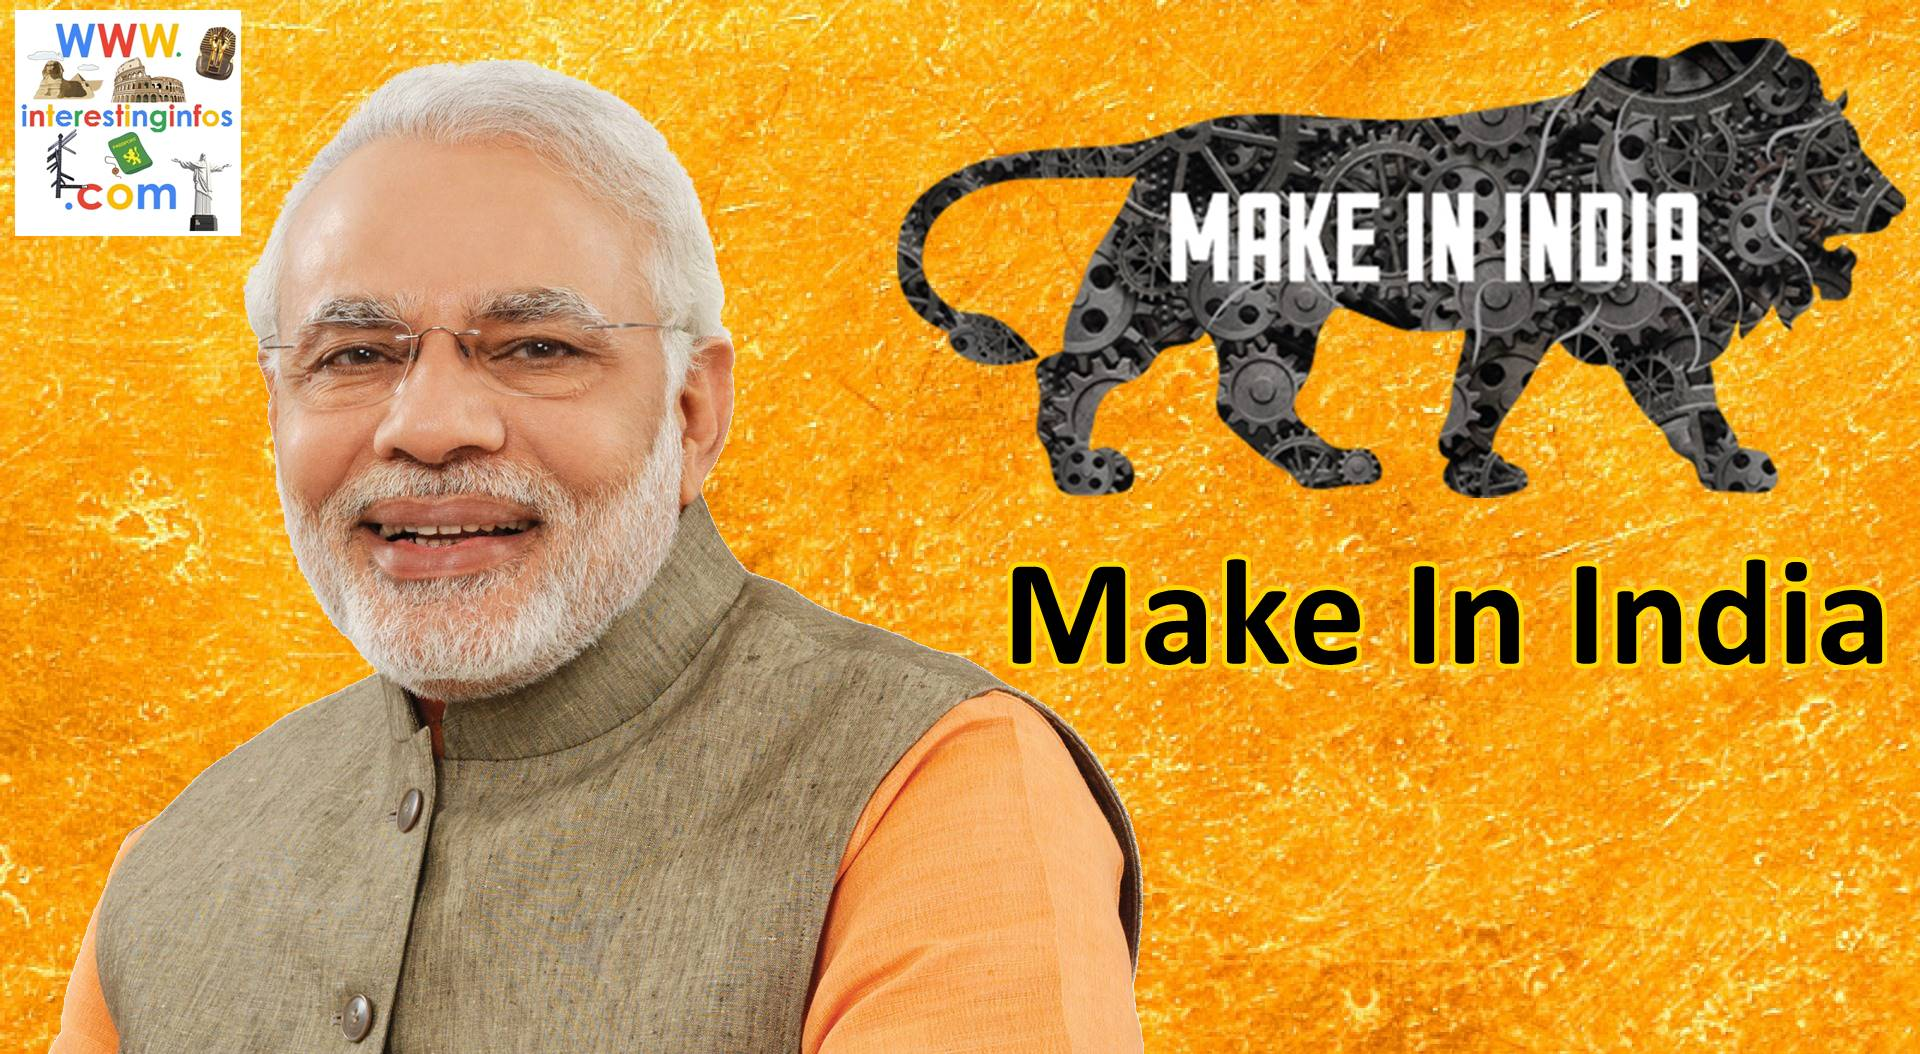 Narendra modi Make in India